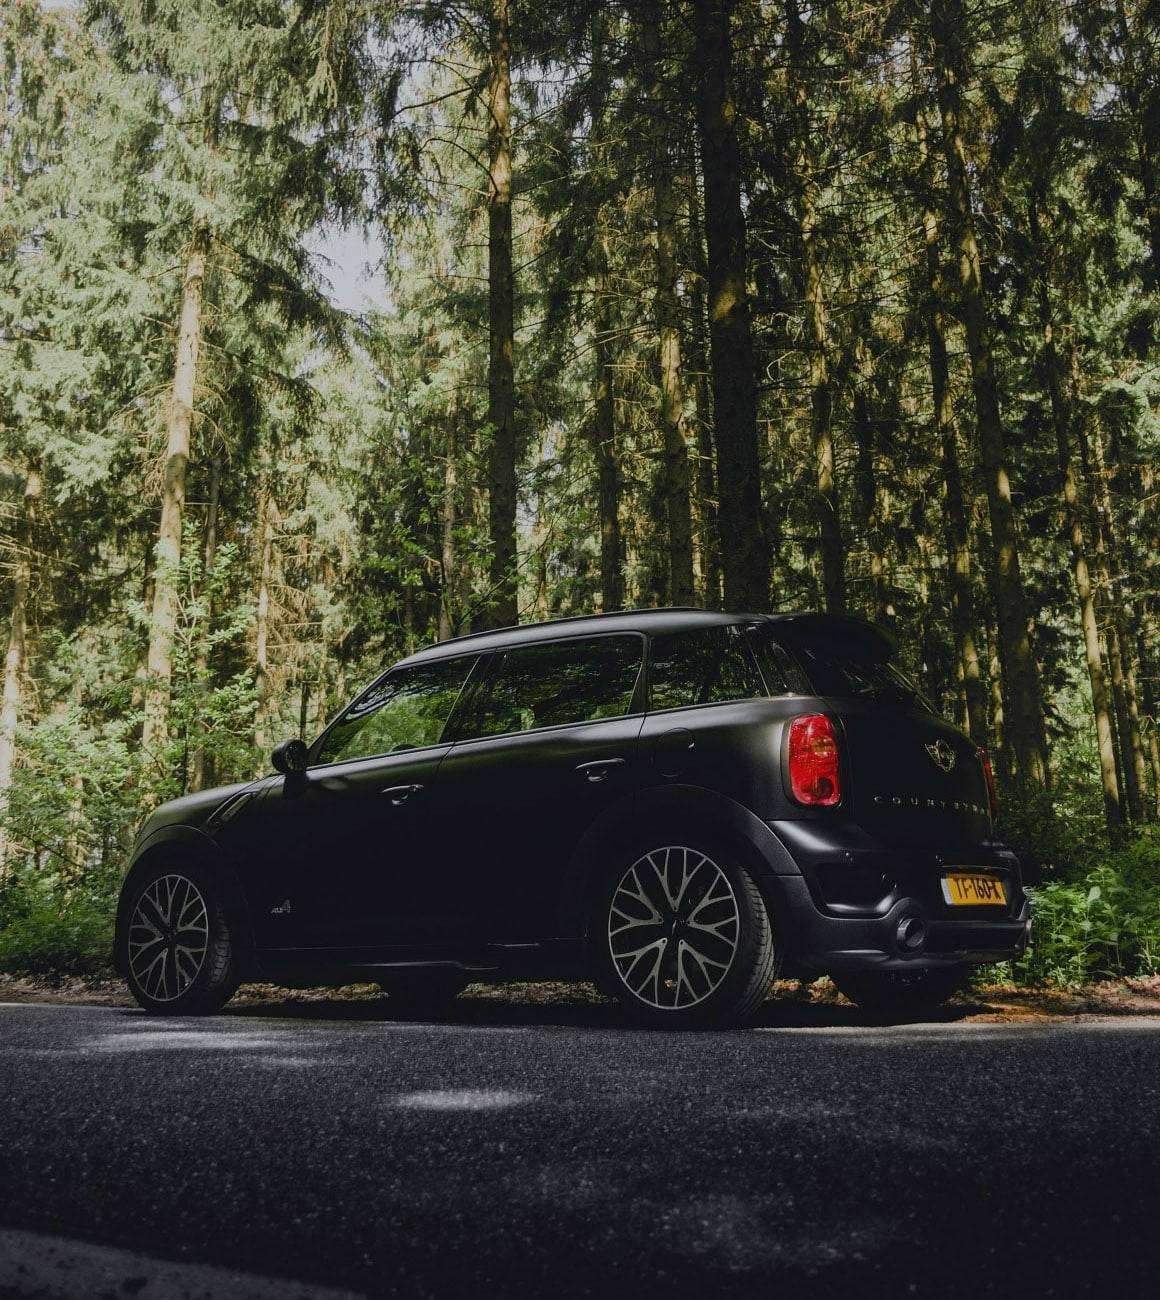 Compare Mini insurance costs for all models